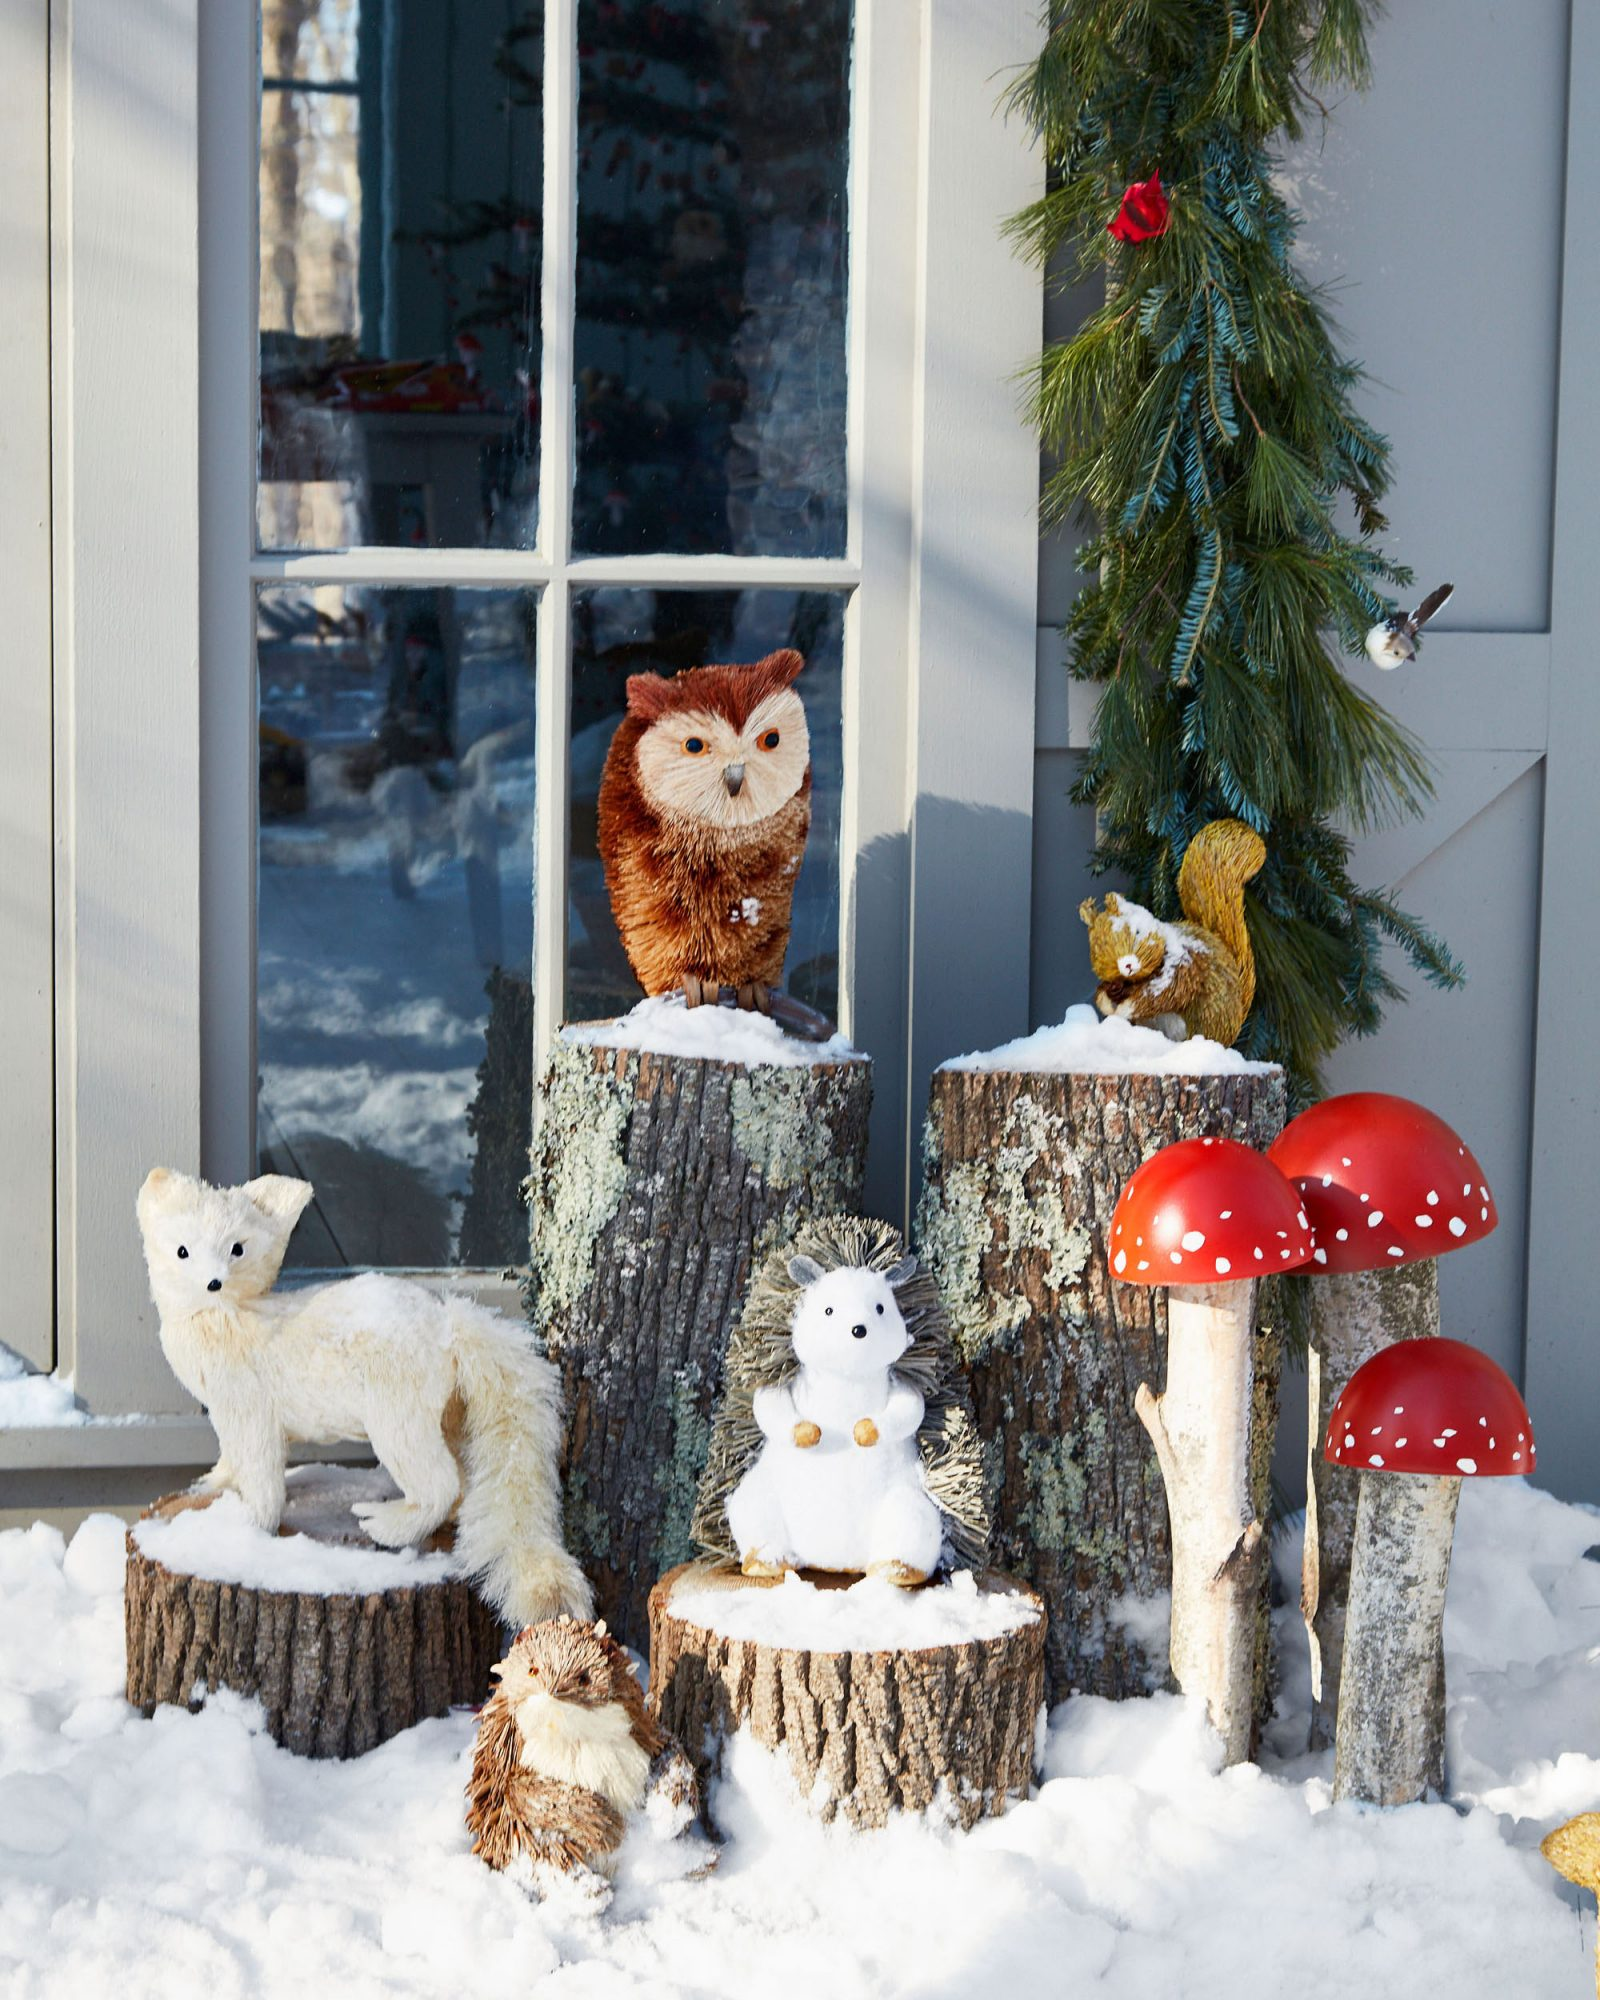 various woodland creatures on snowy logs outside cottage